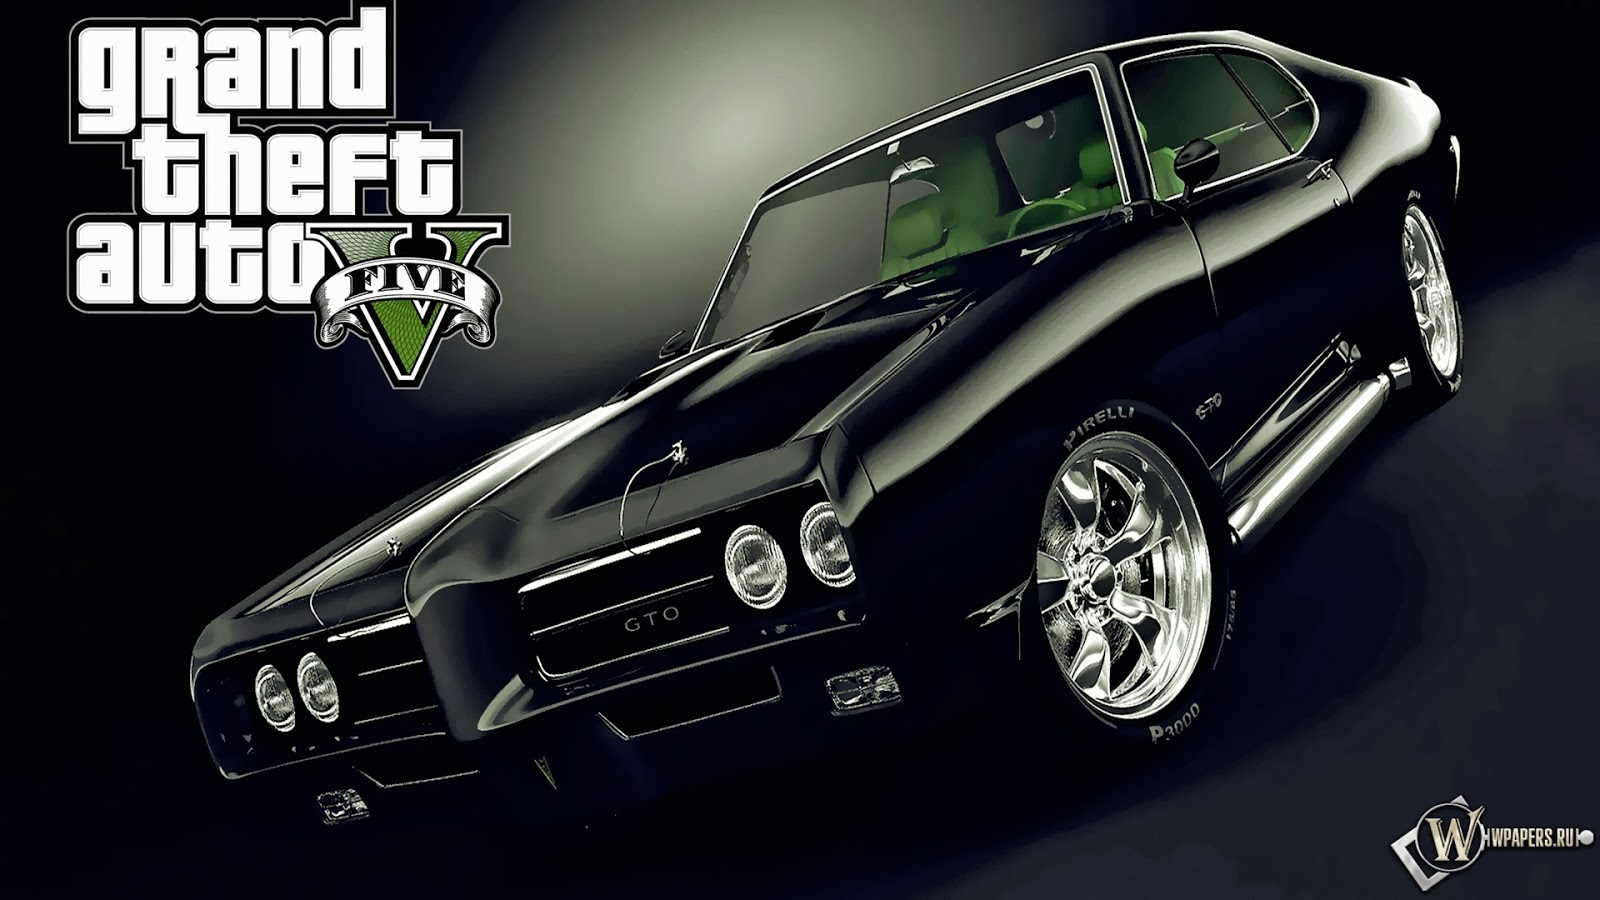 GTA  Wallpapers of the Best  SETUIX GTA iPad Wallpapers And Backgrounds 1600x900